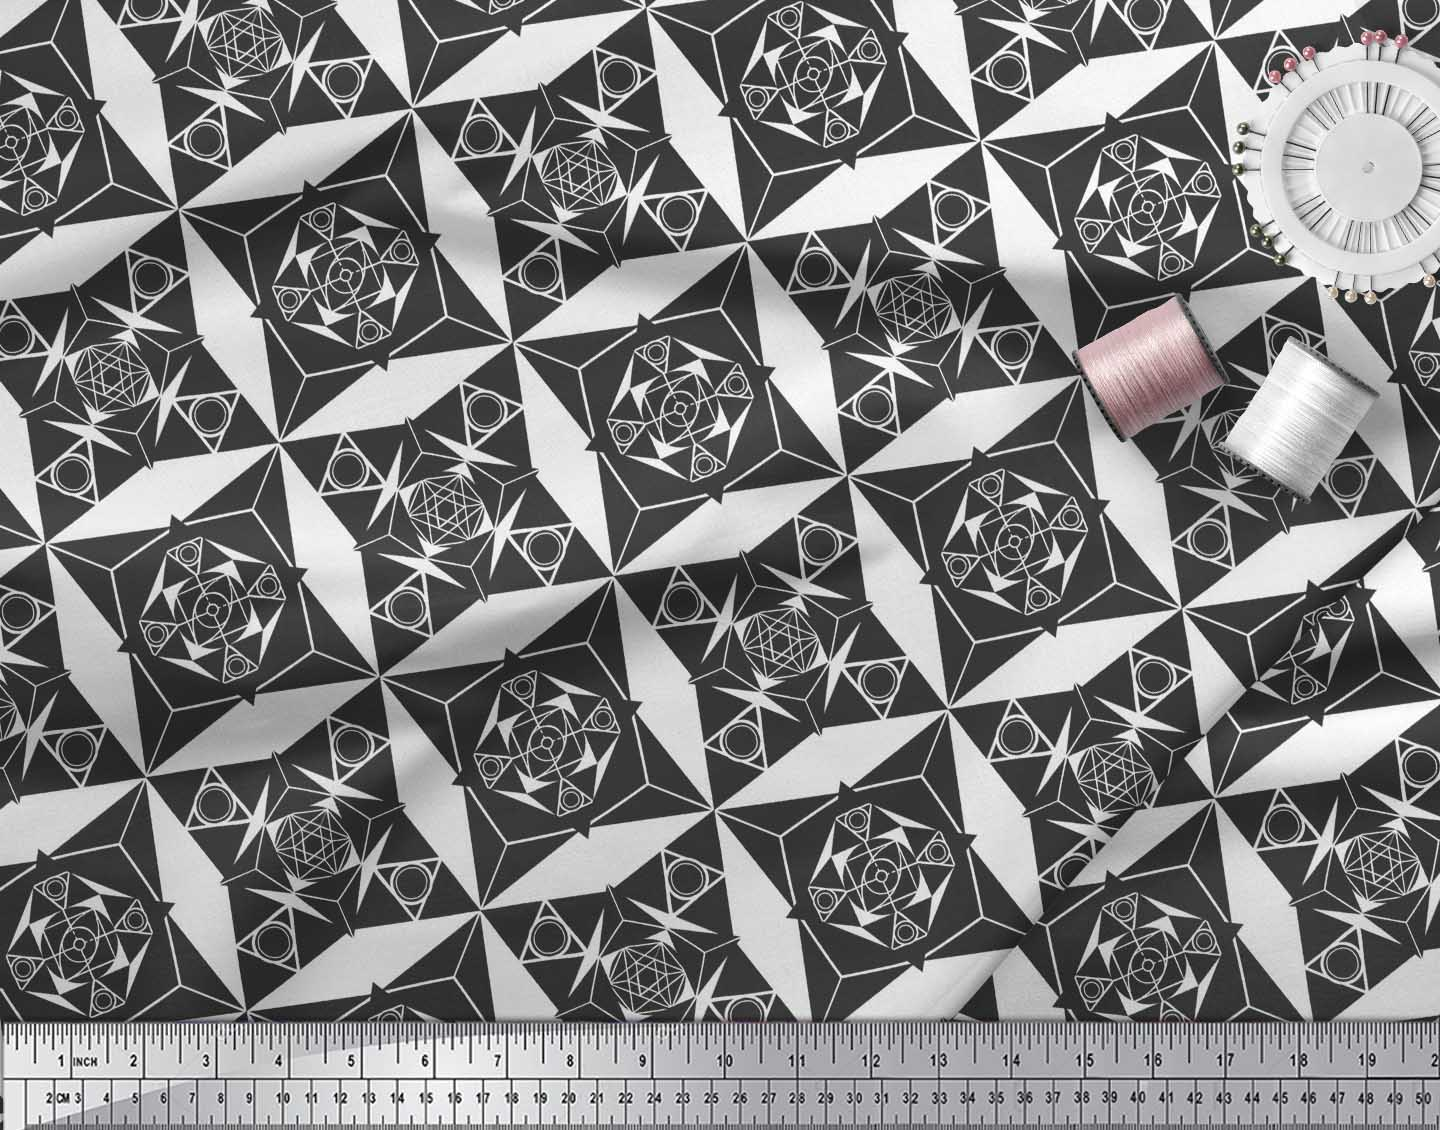 Soimoi-Black-Cotton-Poplin-Fabric-Geometrical-Star-Geometric-Print-FLE thumbnail 3